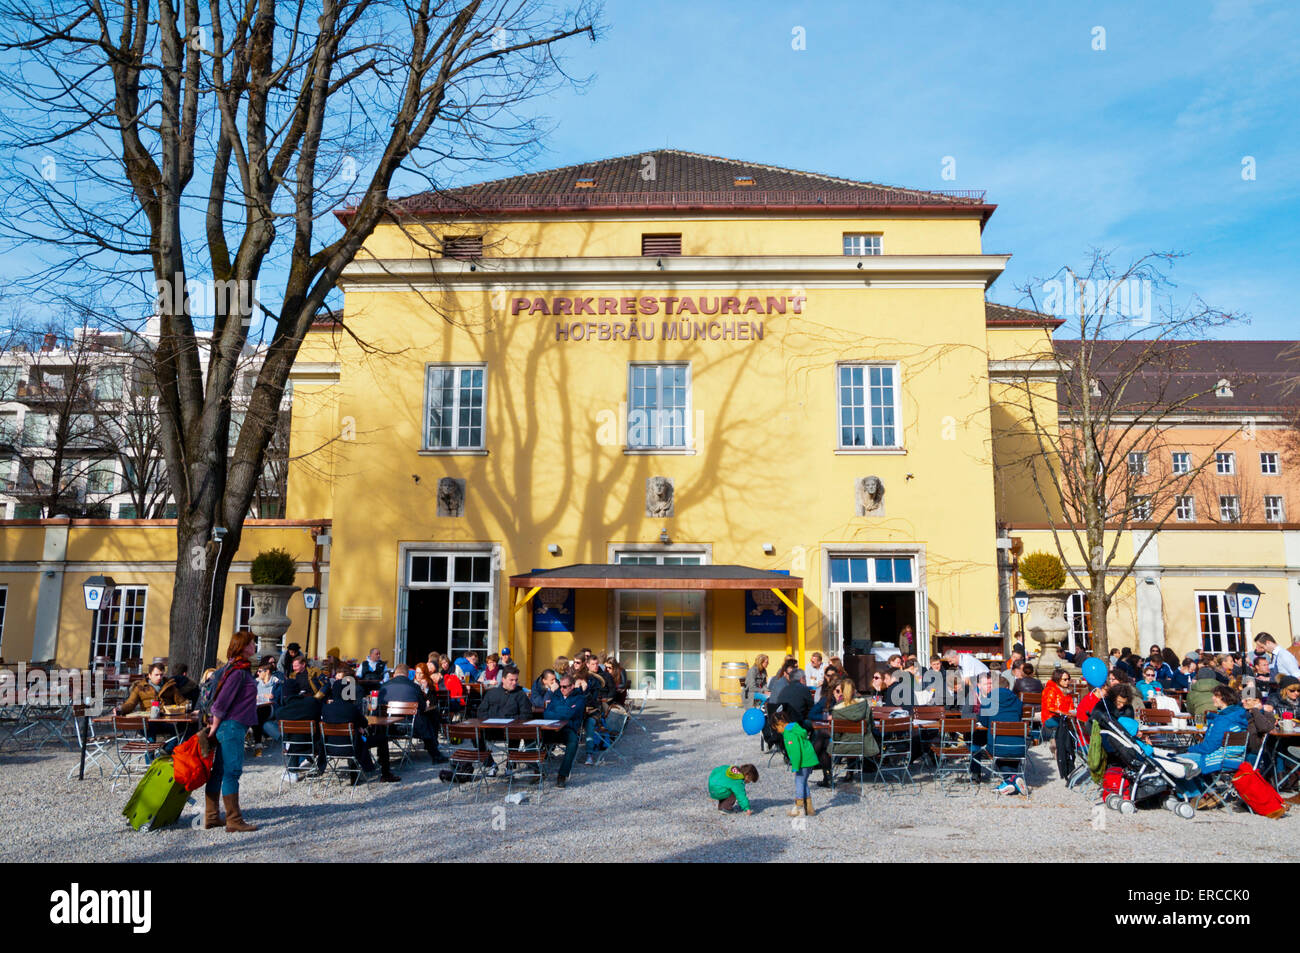 Restaurant with beer garden, Alter Botanischer Garten, Maxvorstadt, Munich, Bavaria, Germany - Stock Image